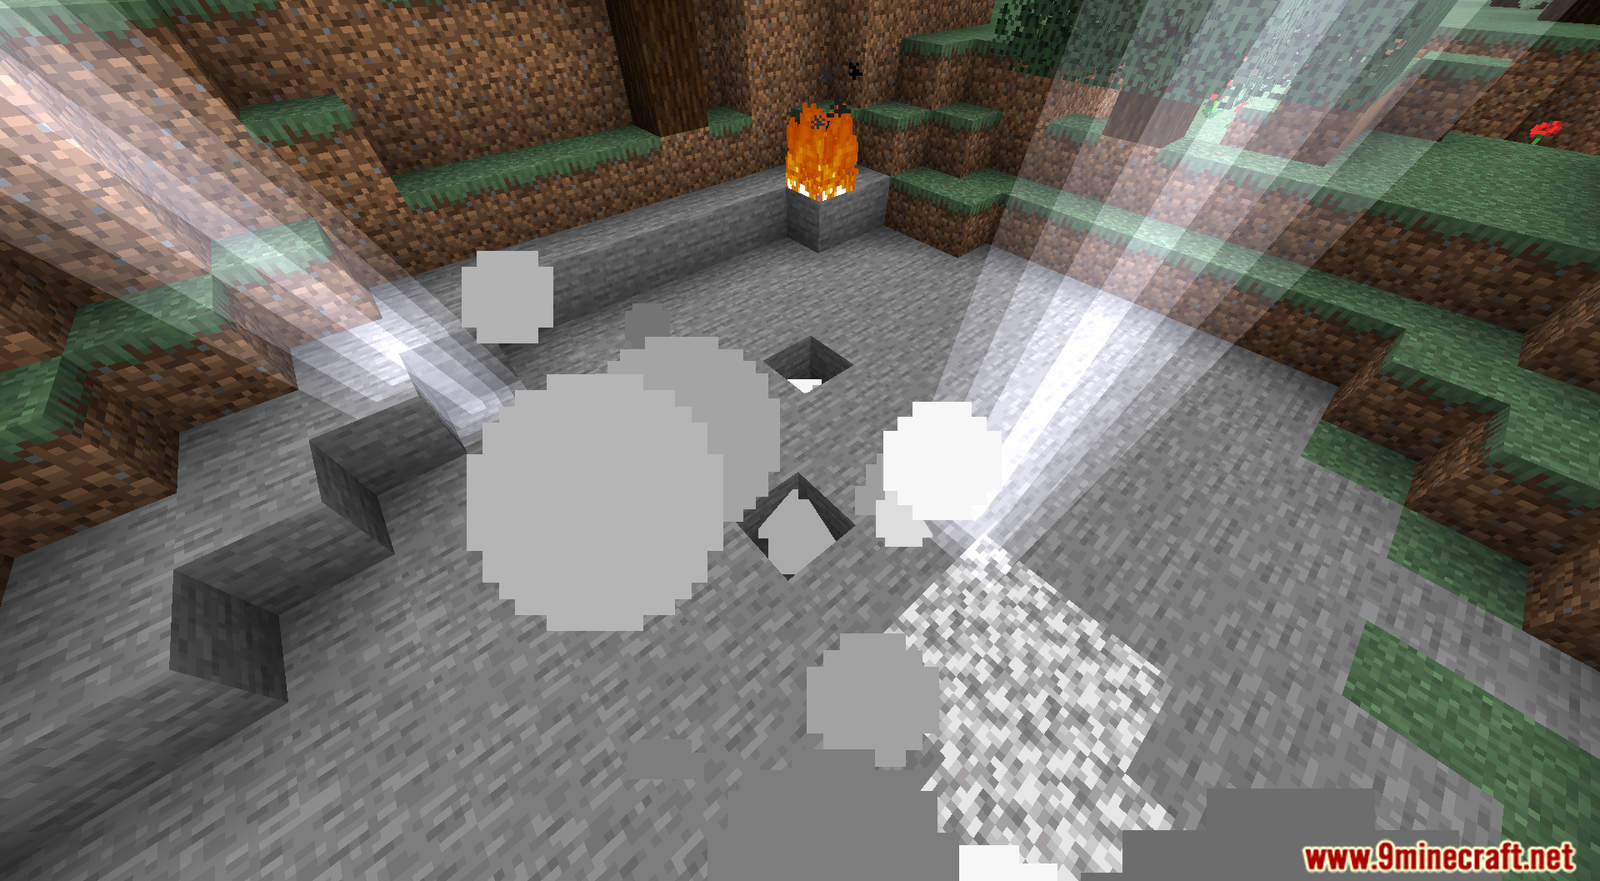 Crazy Creepers mod for Minecraft (2)